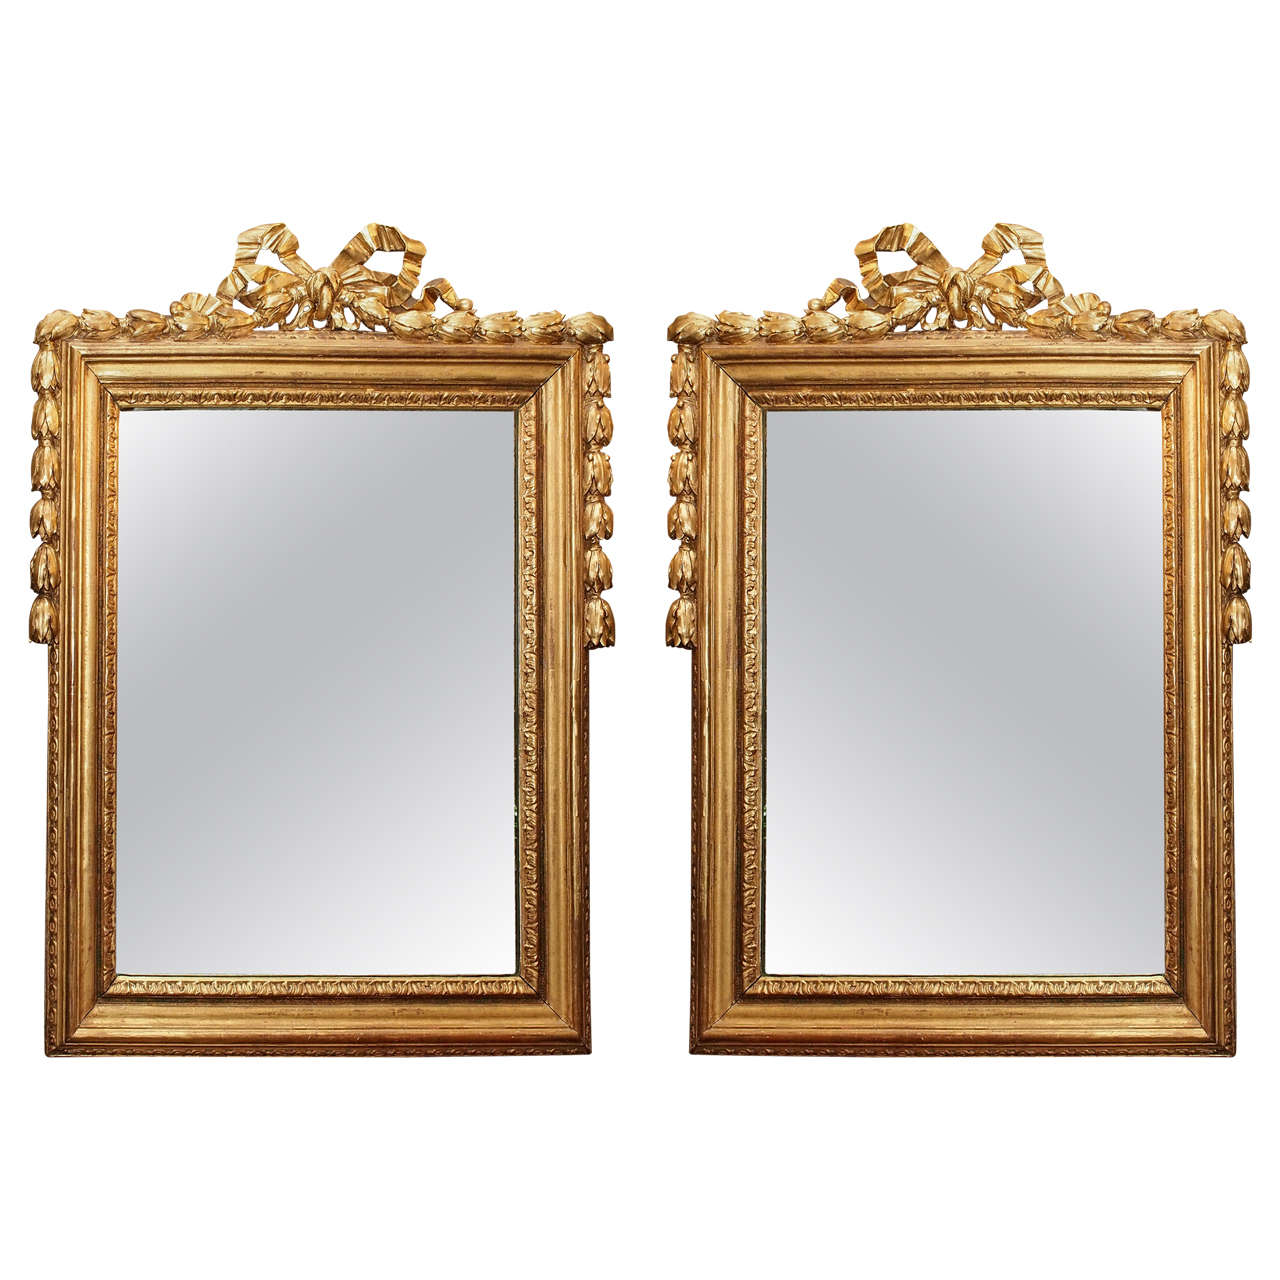 Pair antique gold leaf louis xvi style mirrors at 1stdibs for Antique style wall mirror